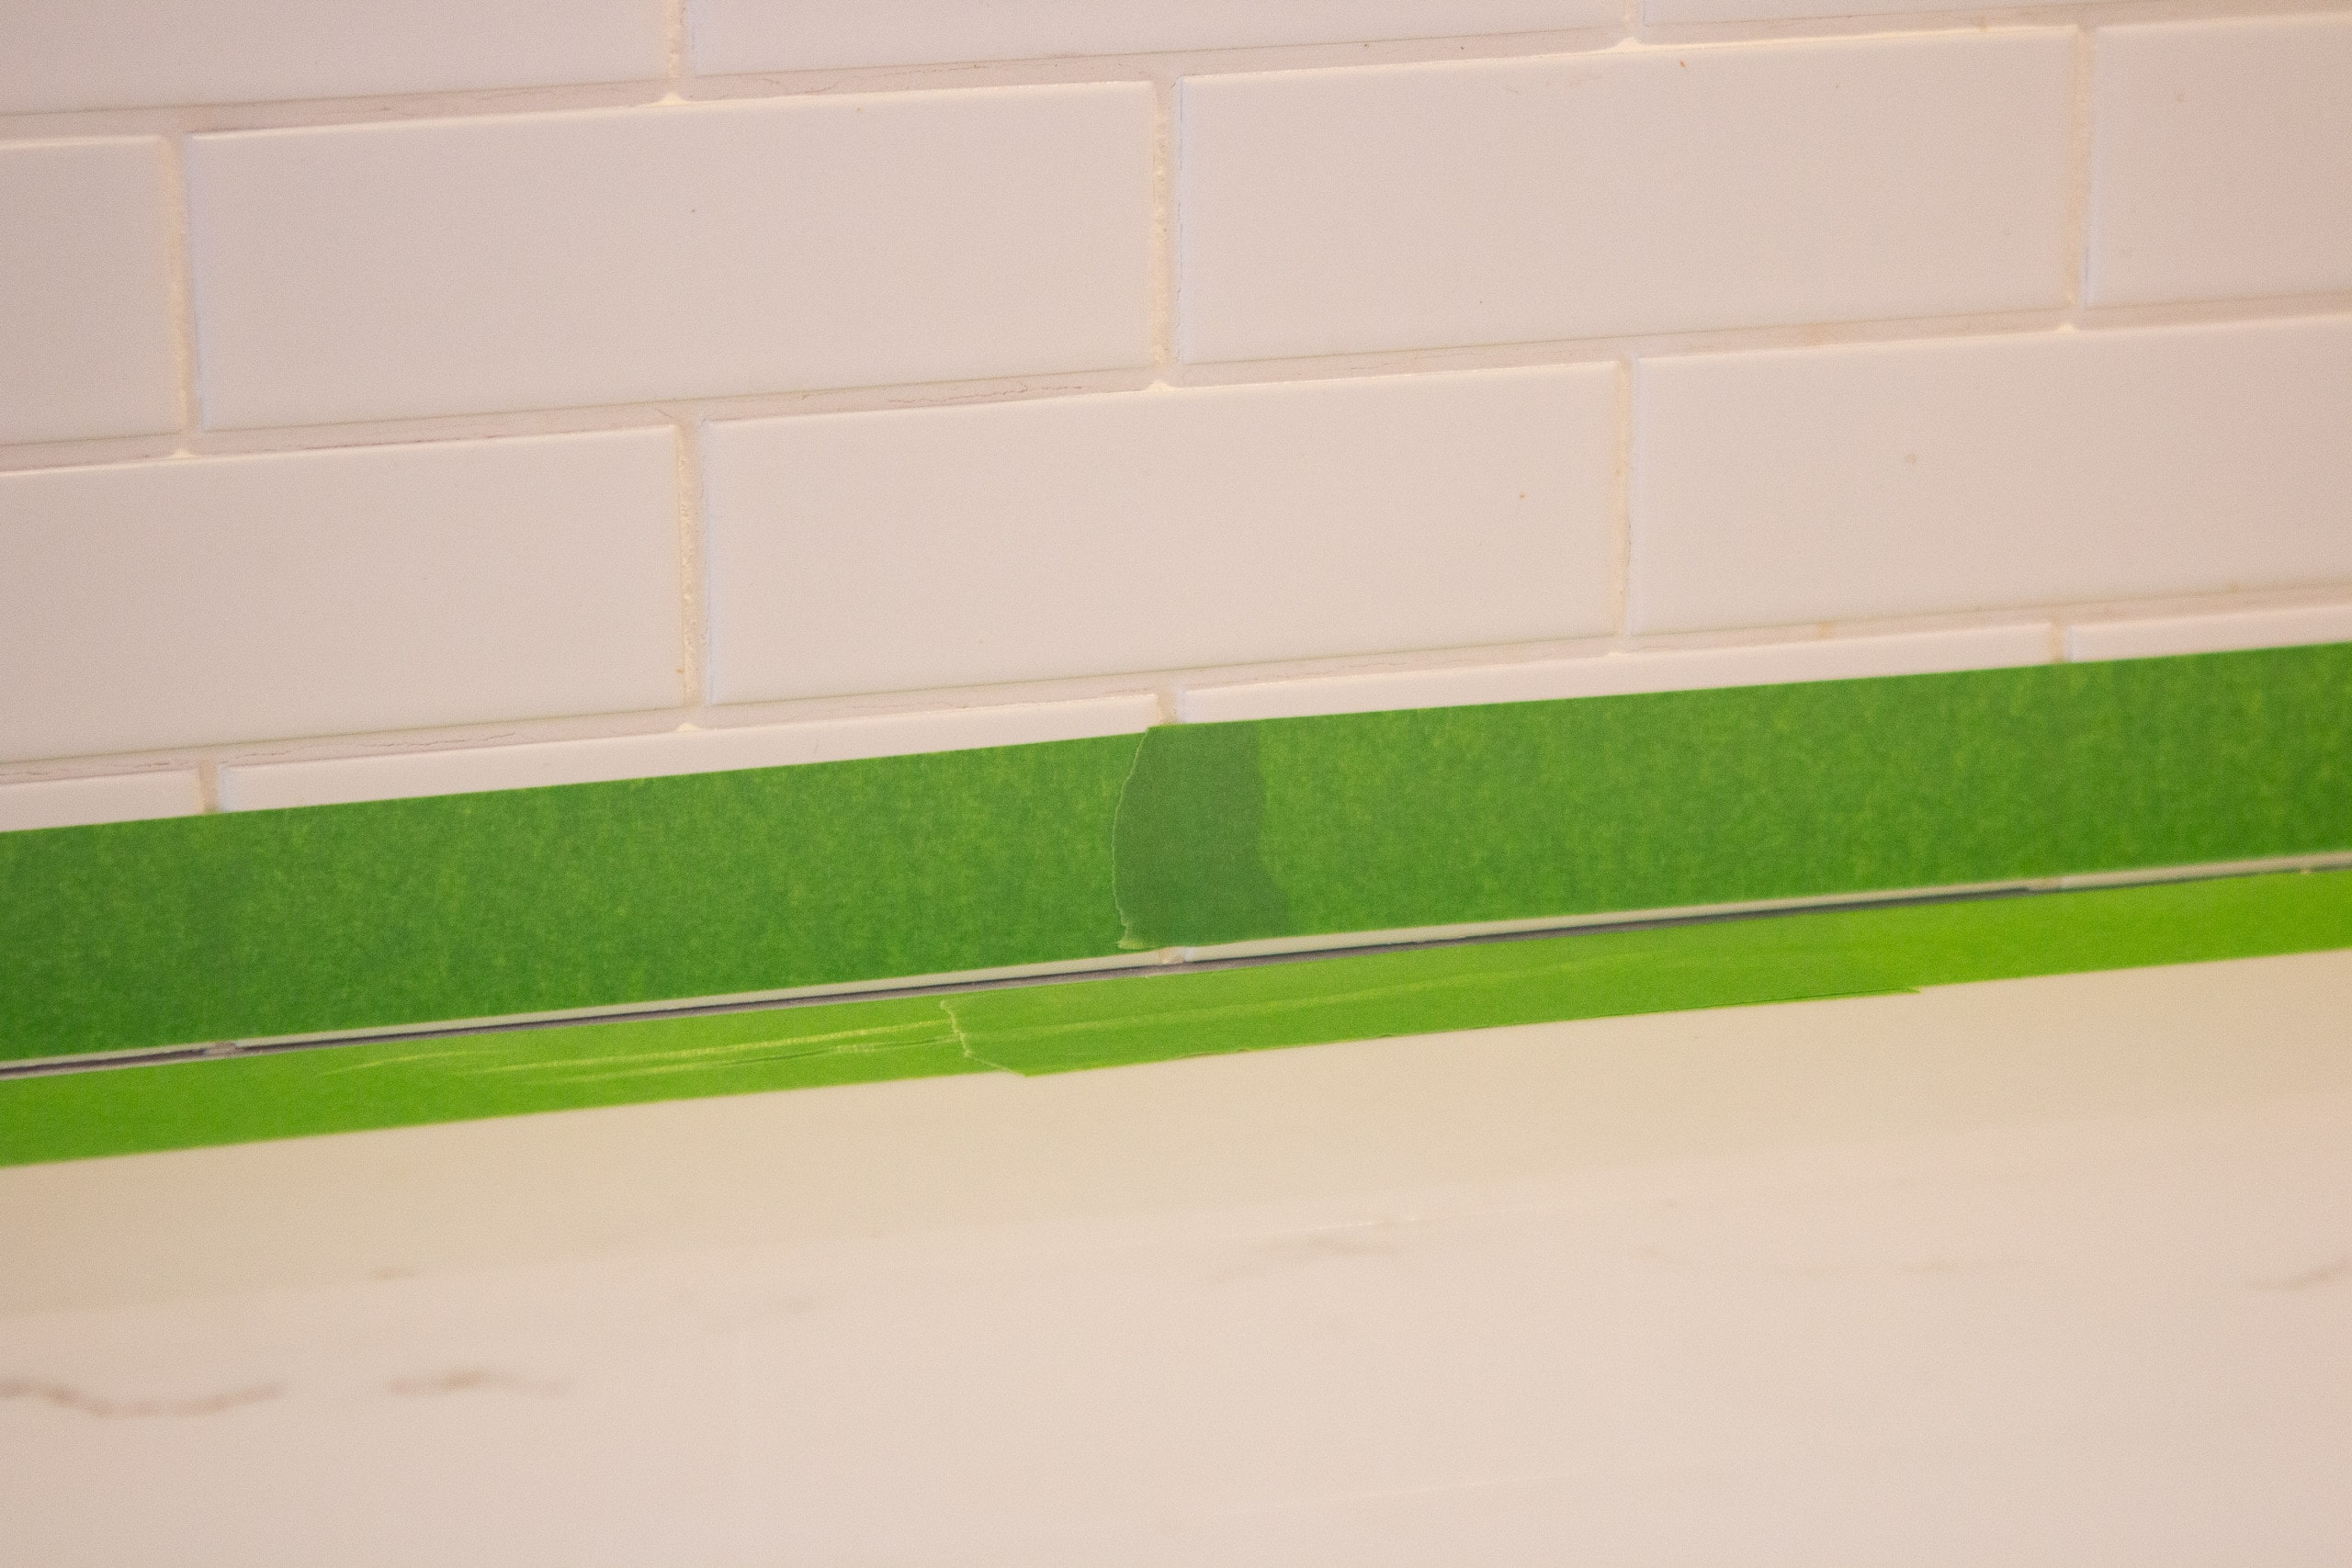 Use painter's tape when caulking a backsplash